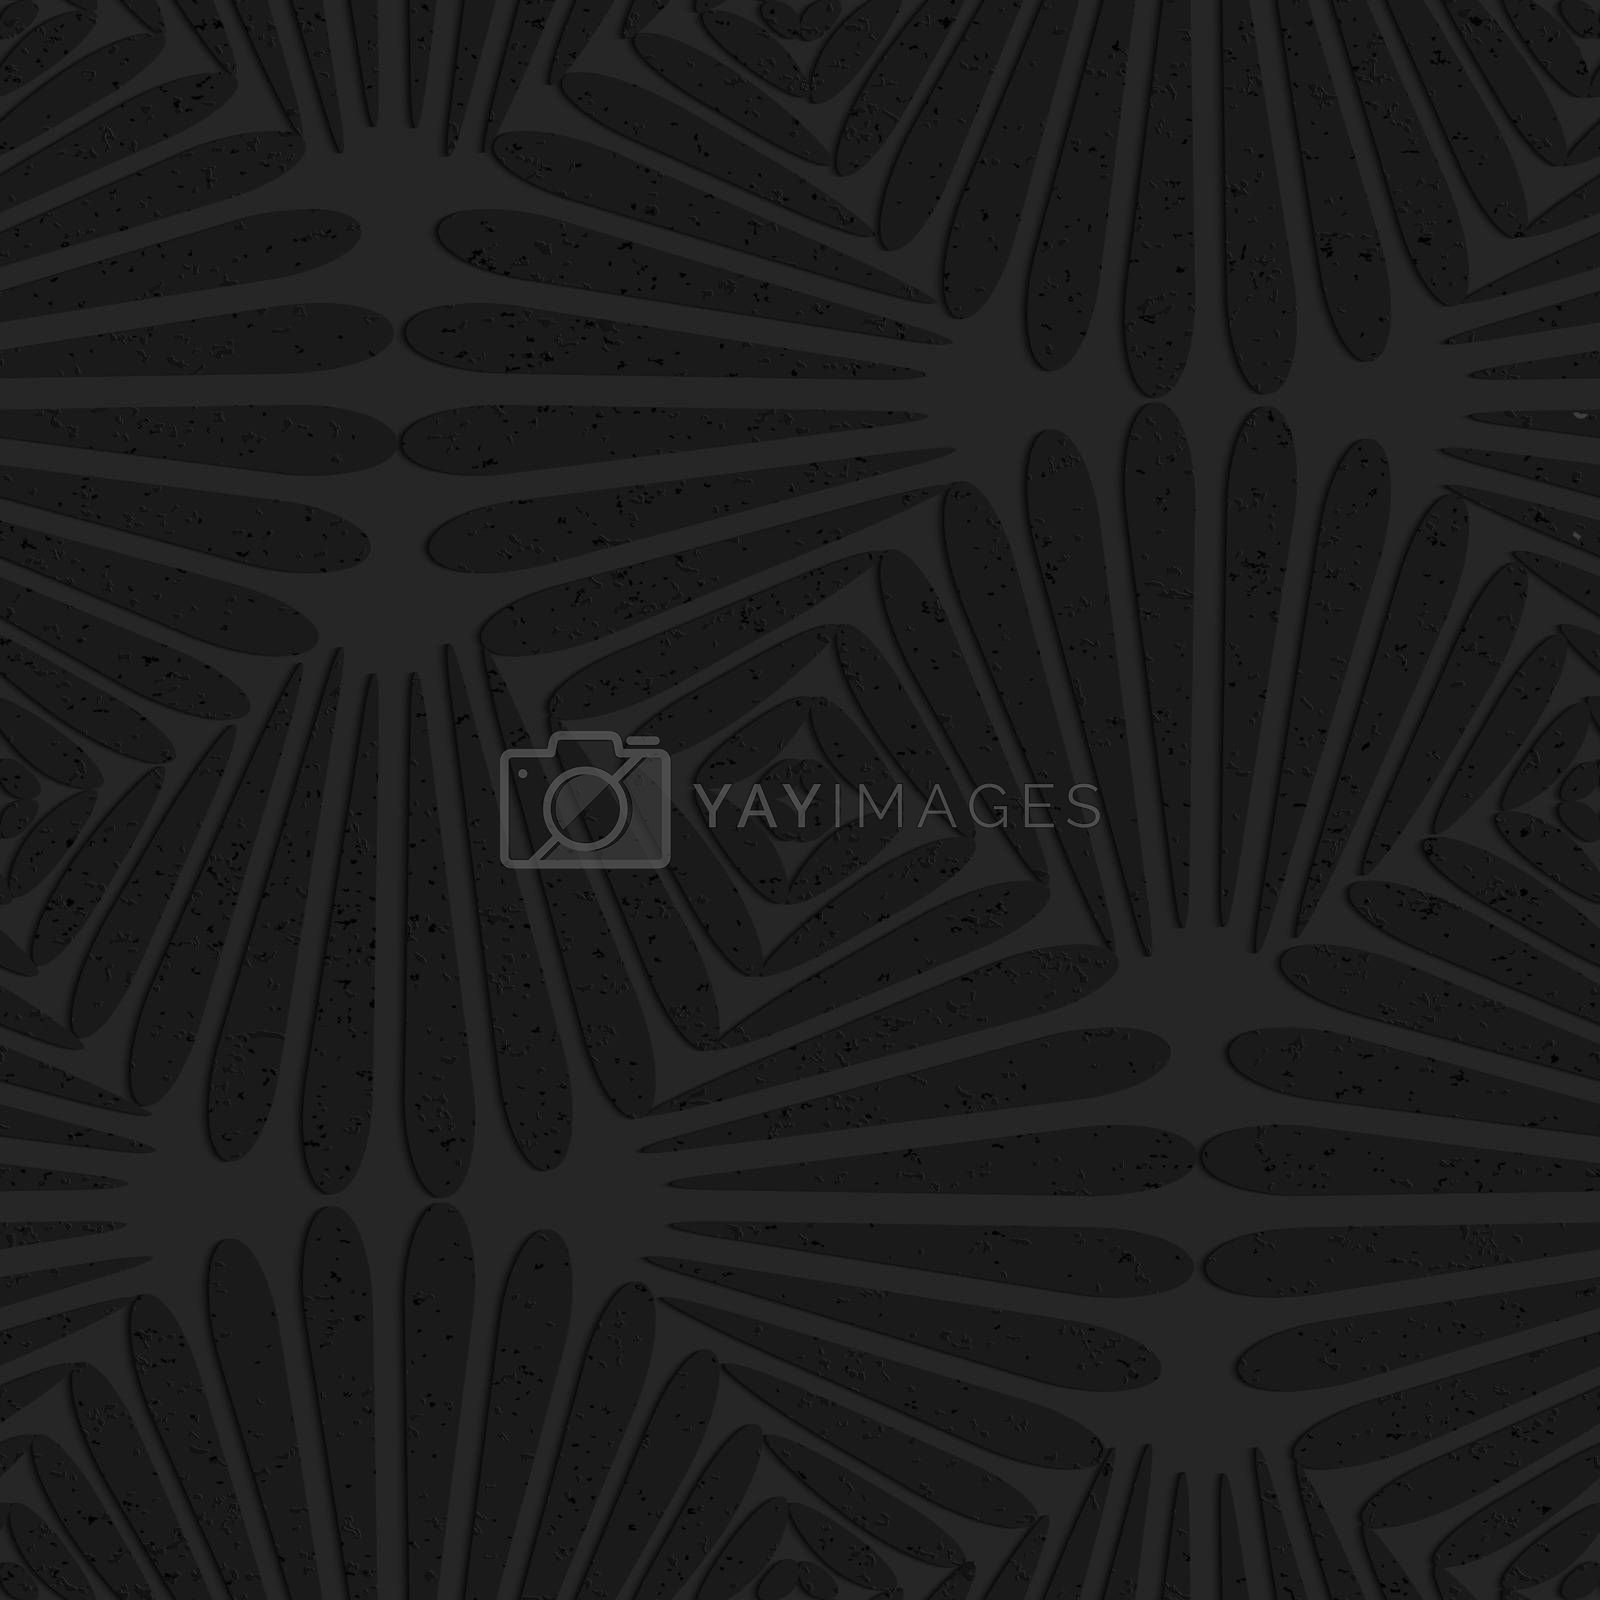 Seamless geometric background. Pattern with 3D texture and realistic shadow.Textured black plastic pedals pin will.